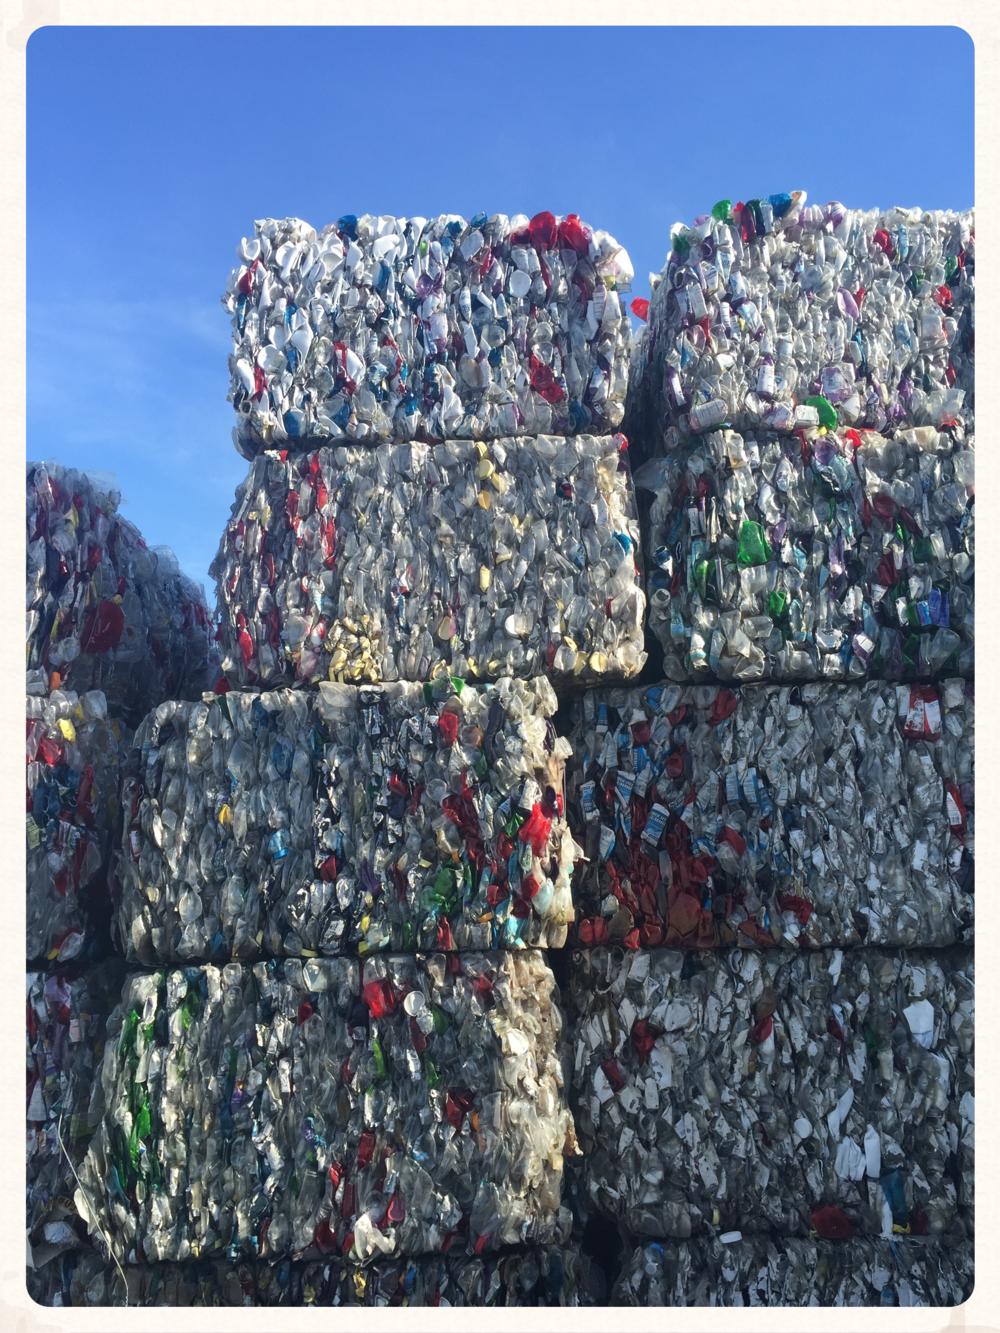 PET plastic at my local recycling center. It will be sold and shipped to China. 2015